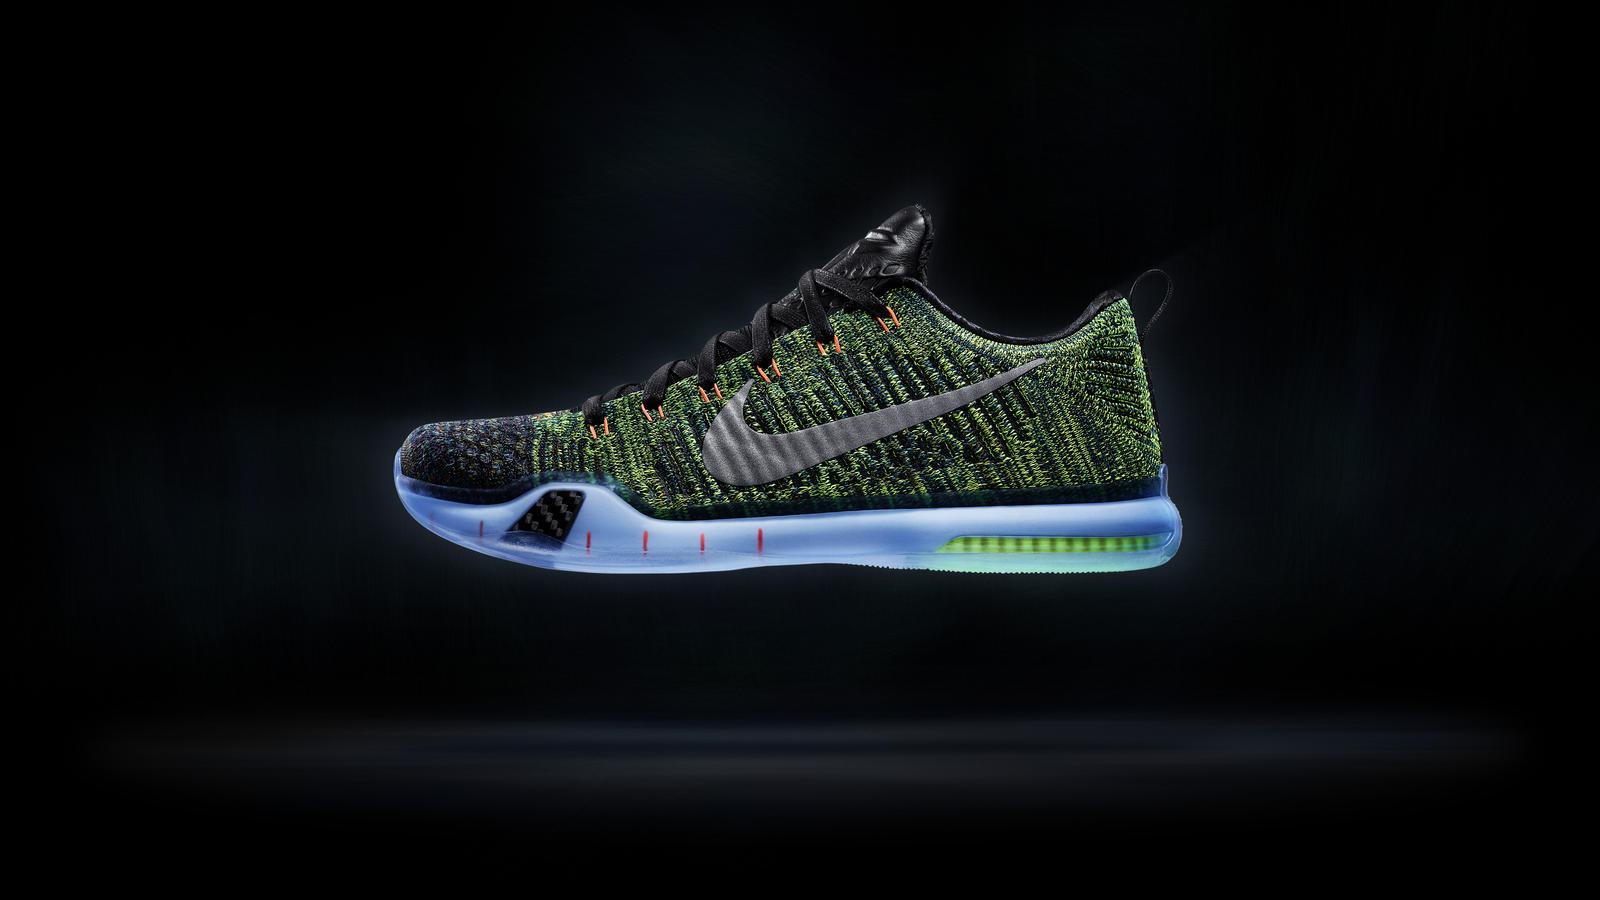 NikeLab x HTM Kobe 10 Elite Low - Testers on